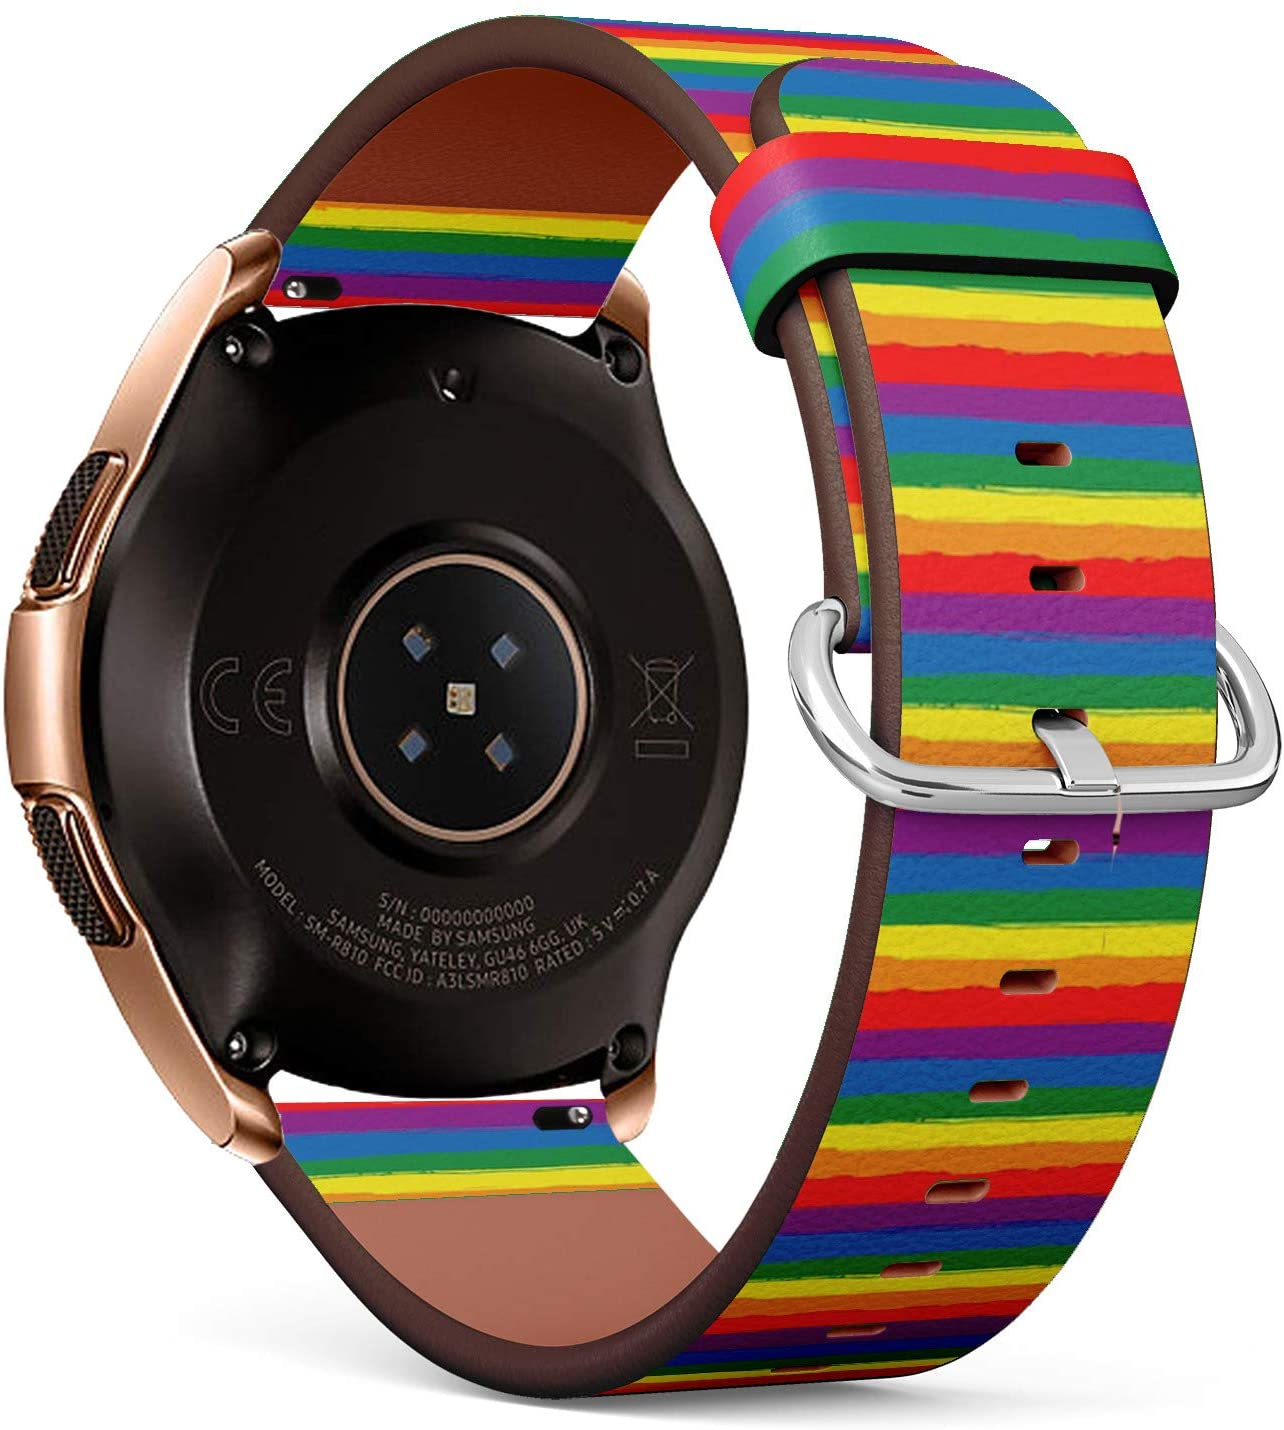 Compatible with Samsung Galaxy Watch (42mm) - Leather Watch Wrist Band Strap Bracelet with Quick-Release Pins (Rainbow Striped LGBT)